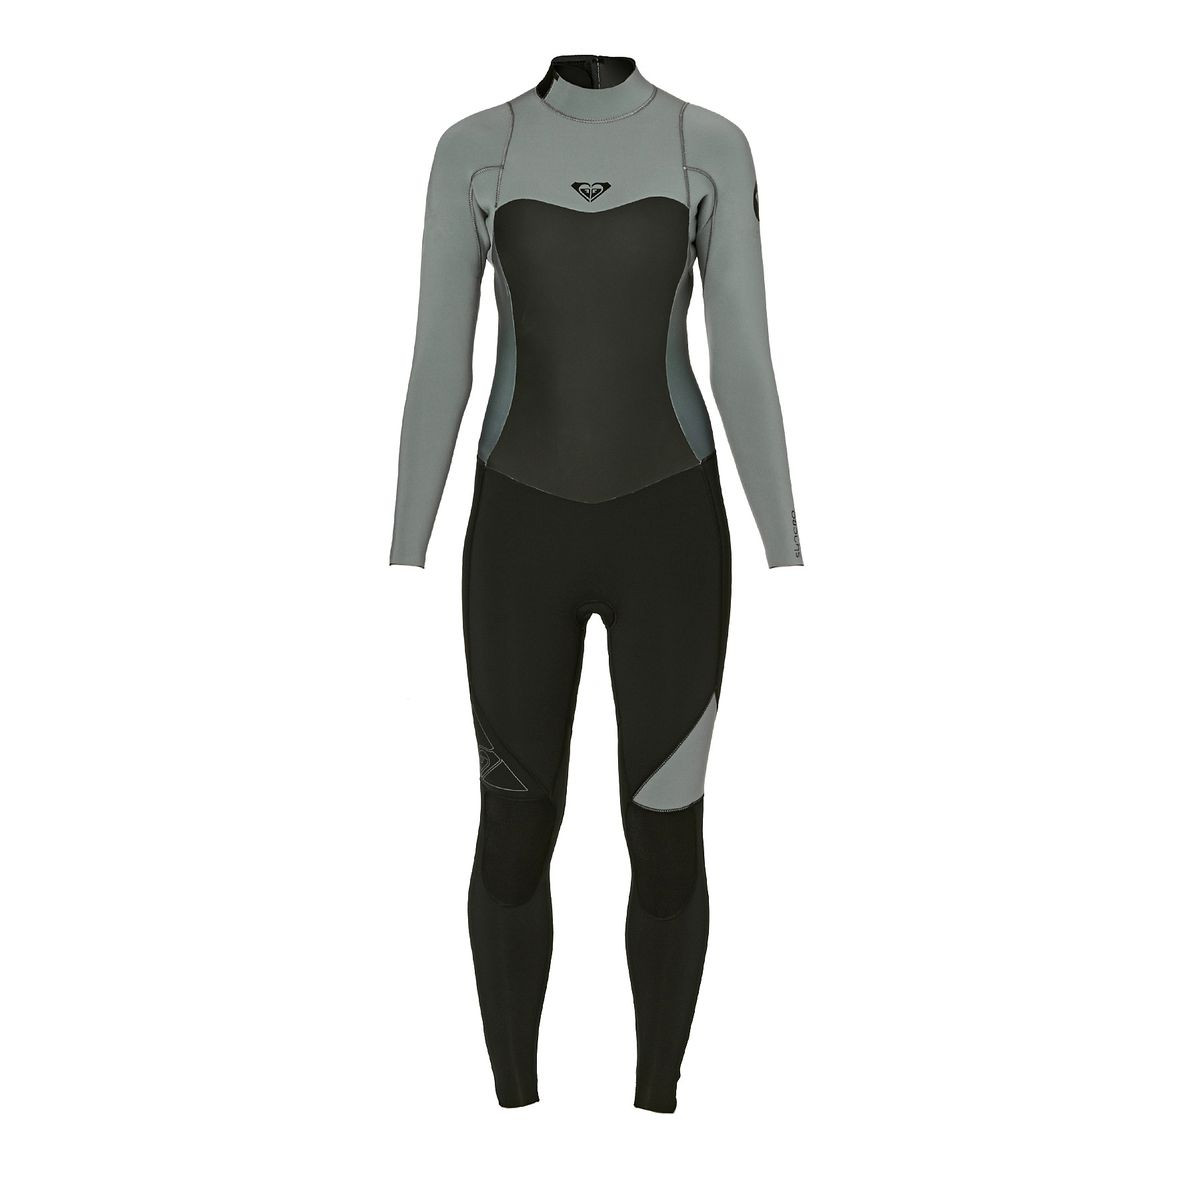 Roxy Womens Syncro 4/3mm 2017 Back Zip Wetsuit - Black